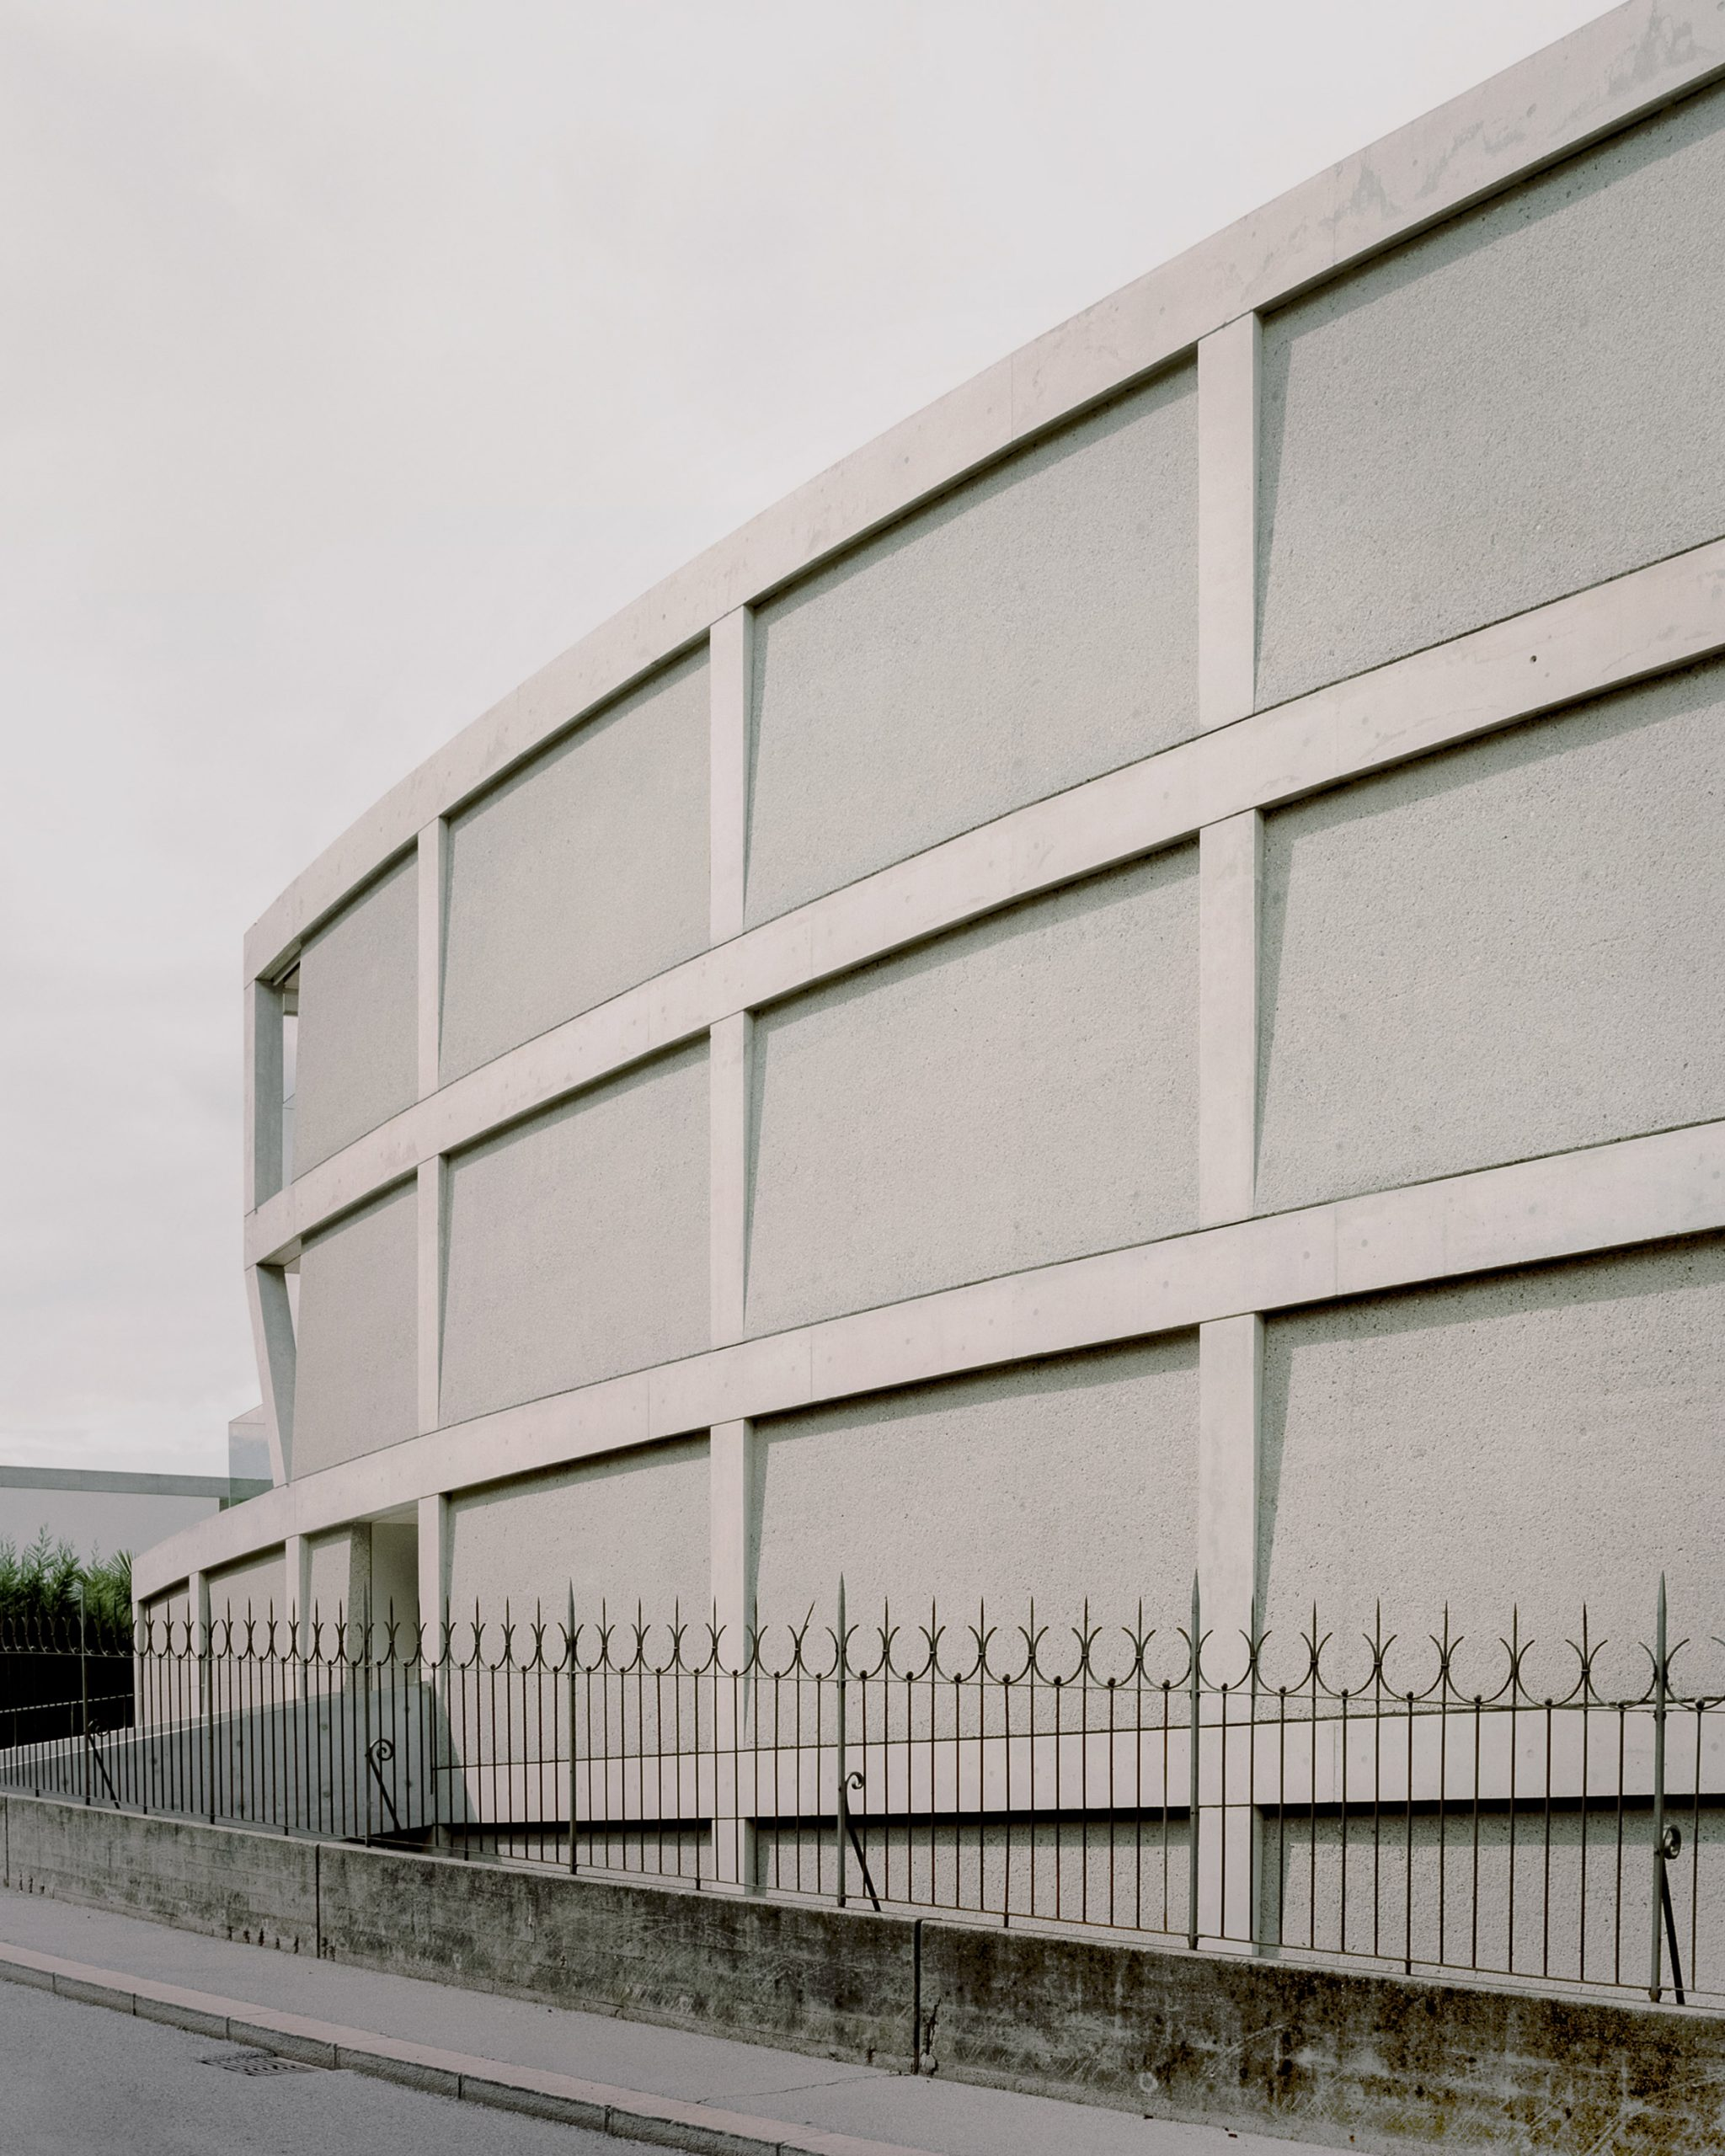 It has a gridded facade with bush-hammered panels by DF_DC